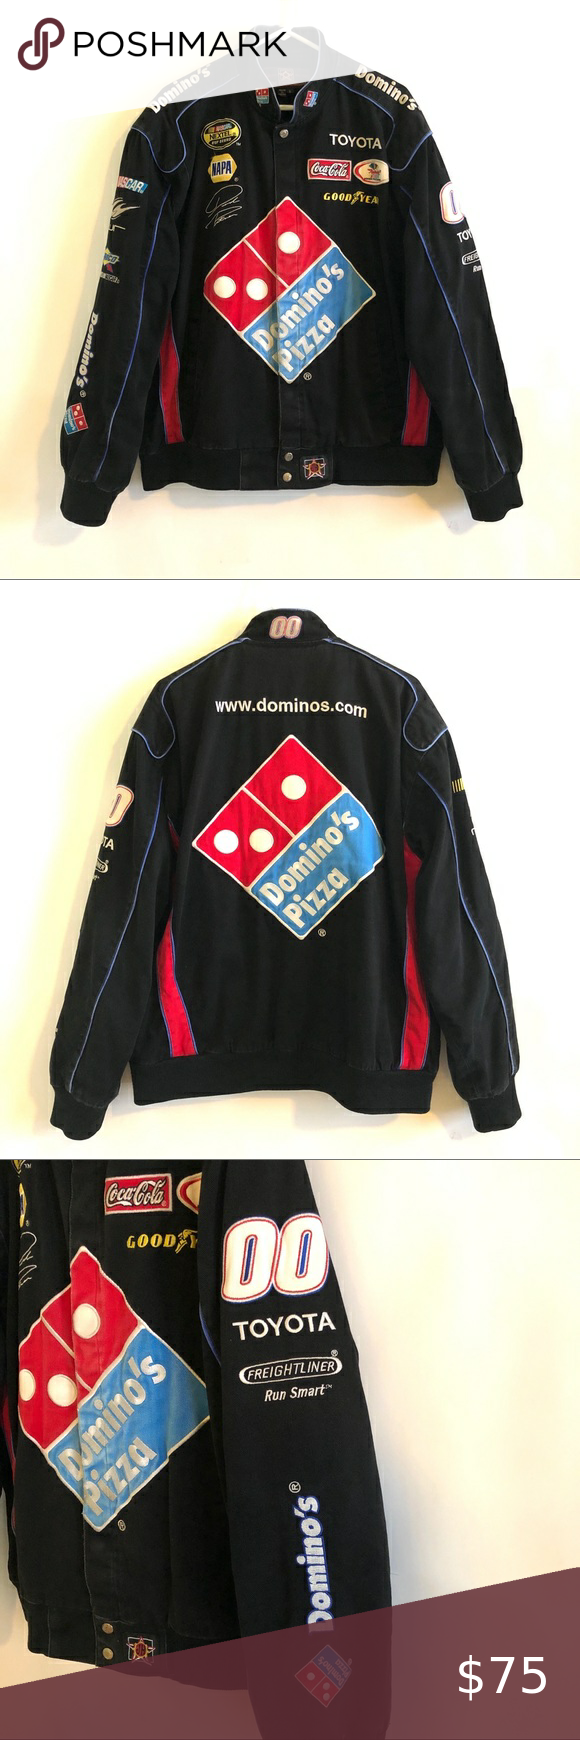 Nascar David Reutimann #00 Dominos Jacket Nascar David Reutimann #00 Dominos jacket by JH Design. Size Large. Embroidered logos of sponsors. Interior pockets. Some fading on front Dominos patch. Please see photos for details. Jackets & Coats